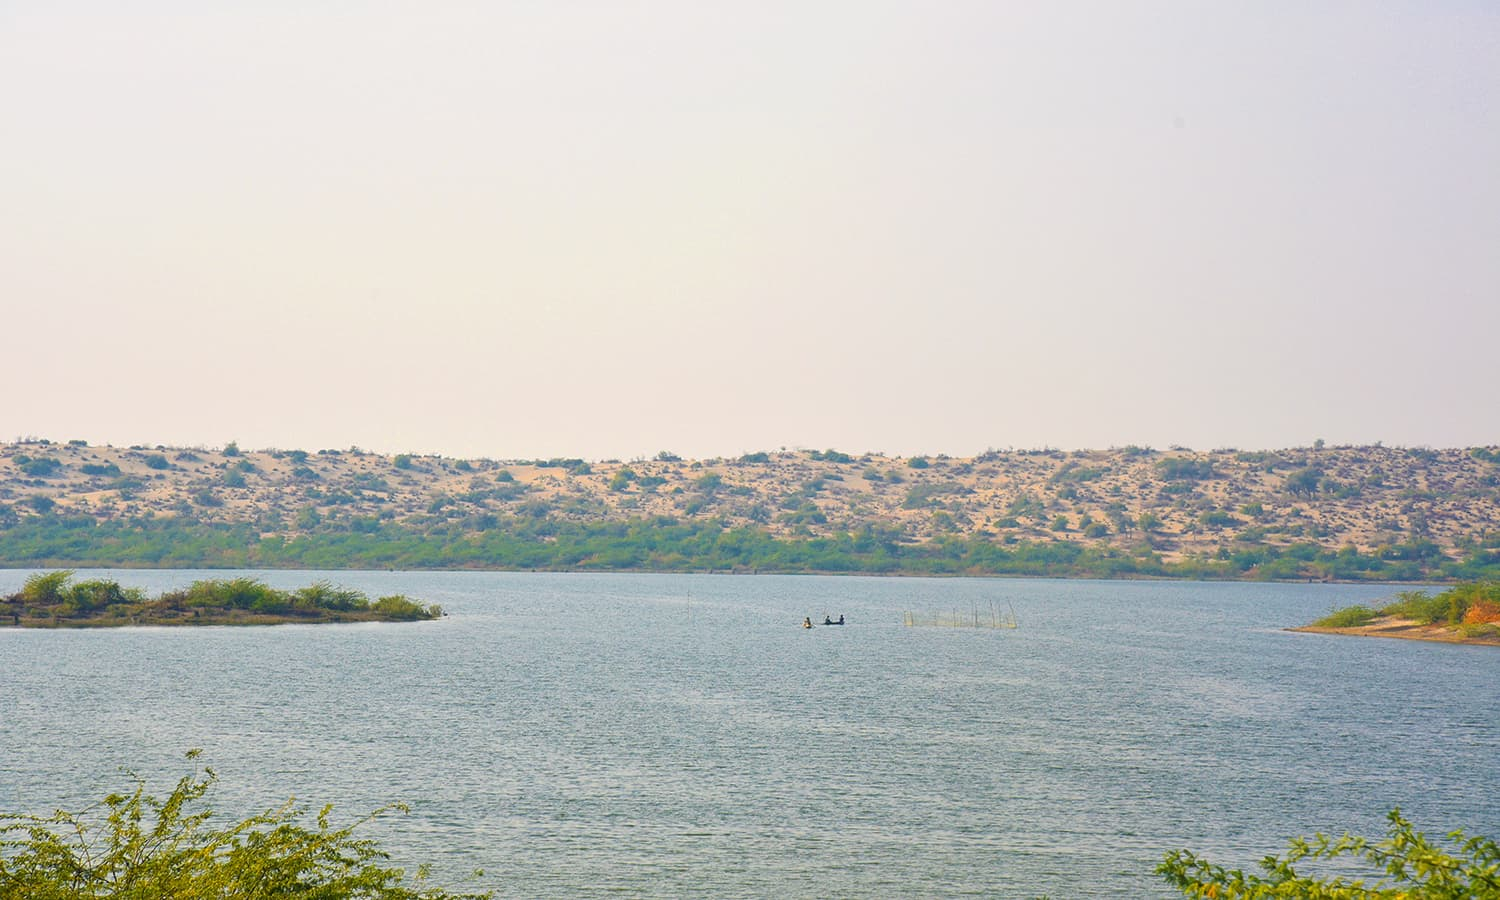 A view of the lake with sand dunes in the background.